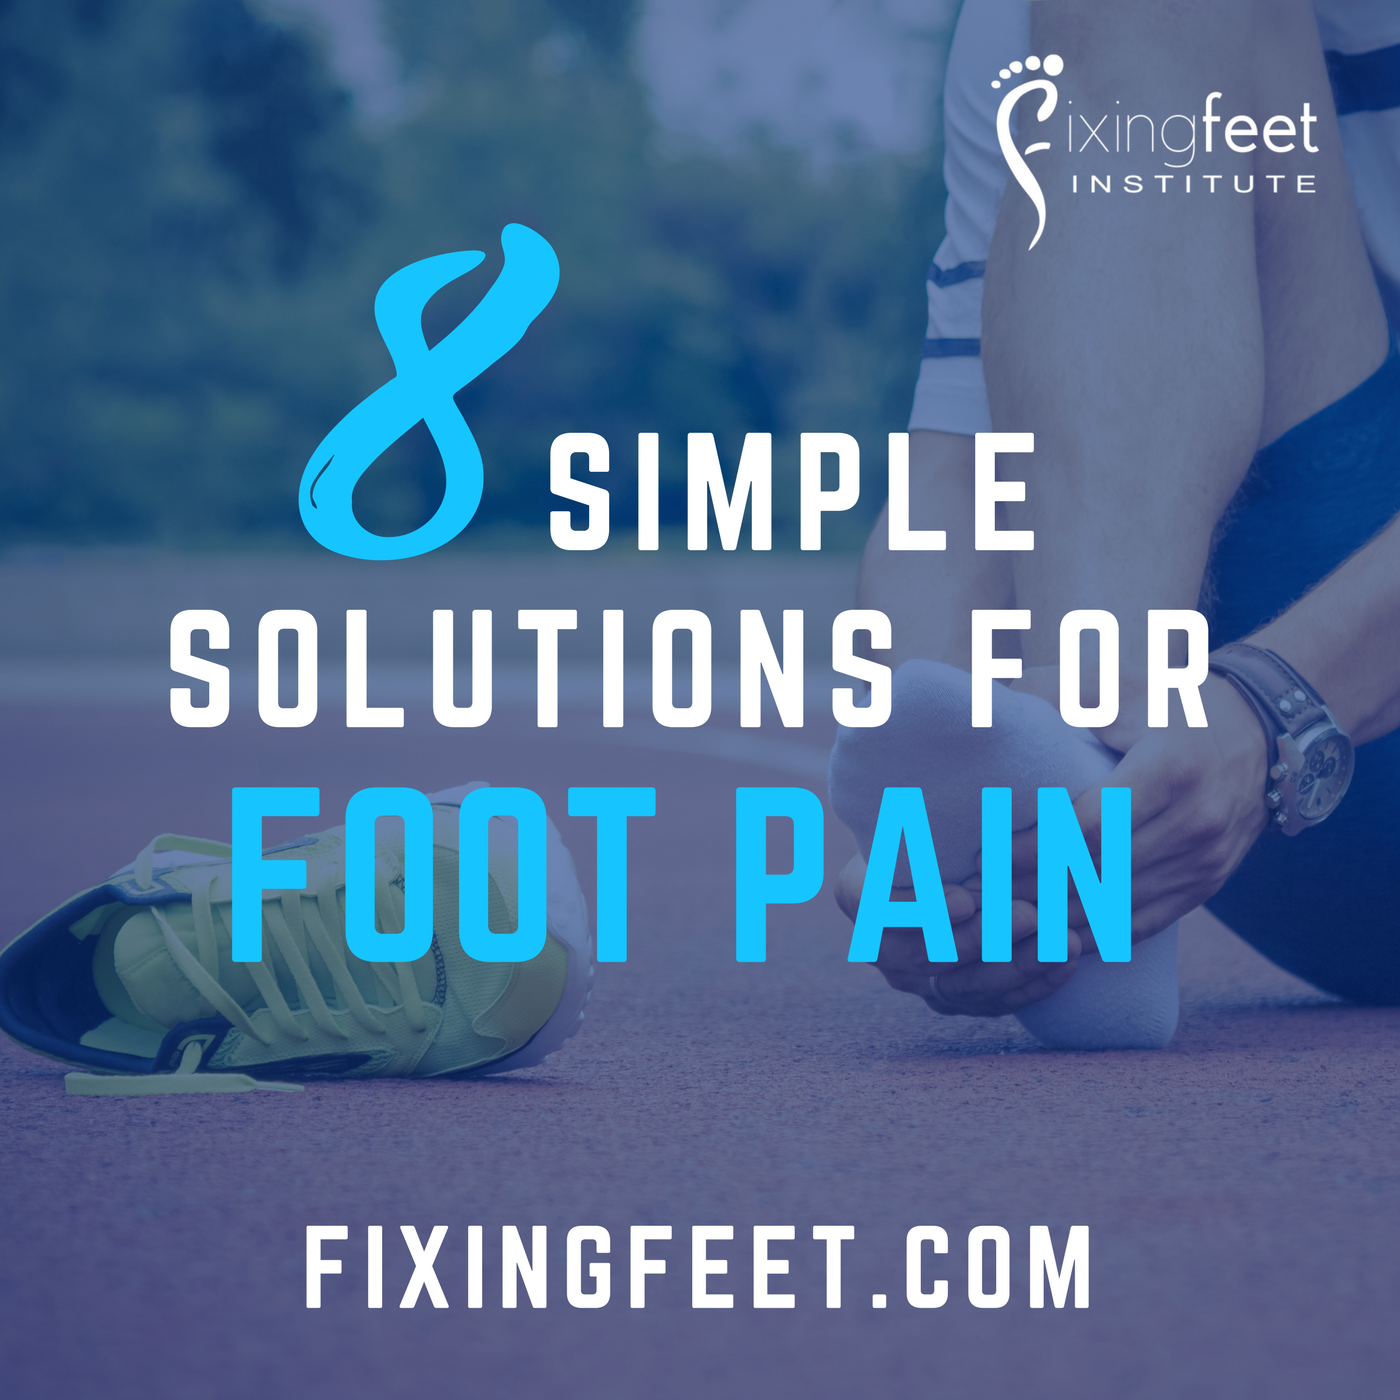 Simple solutions for Foot Pain